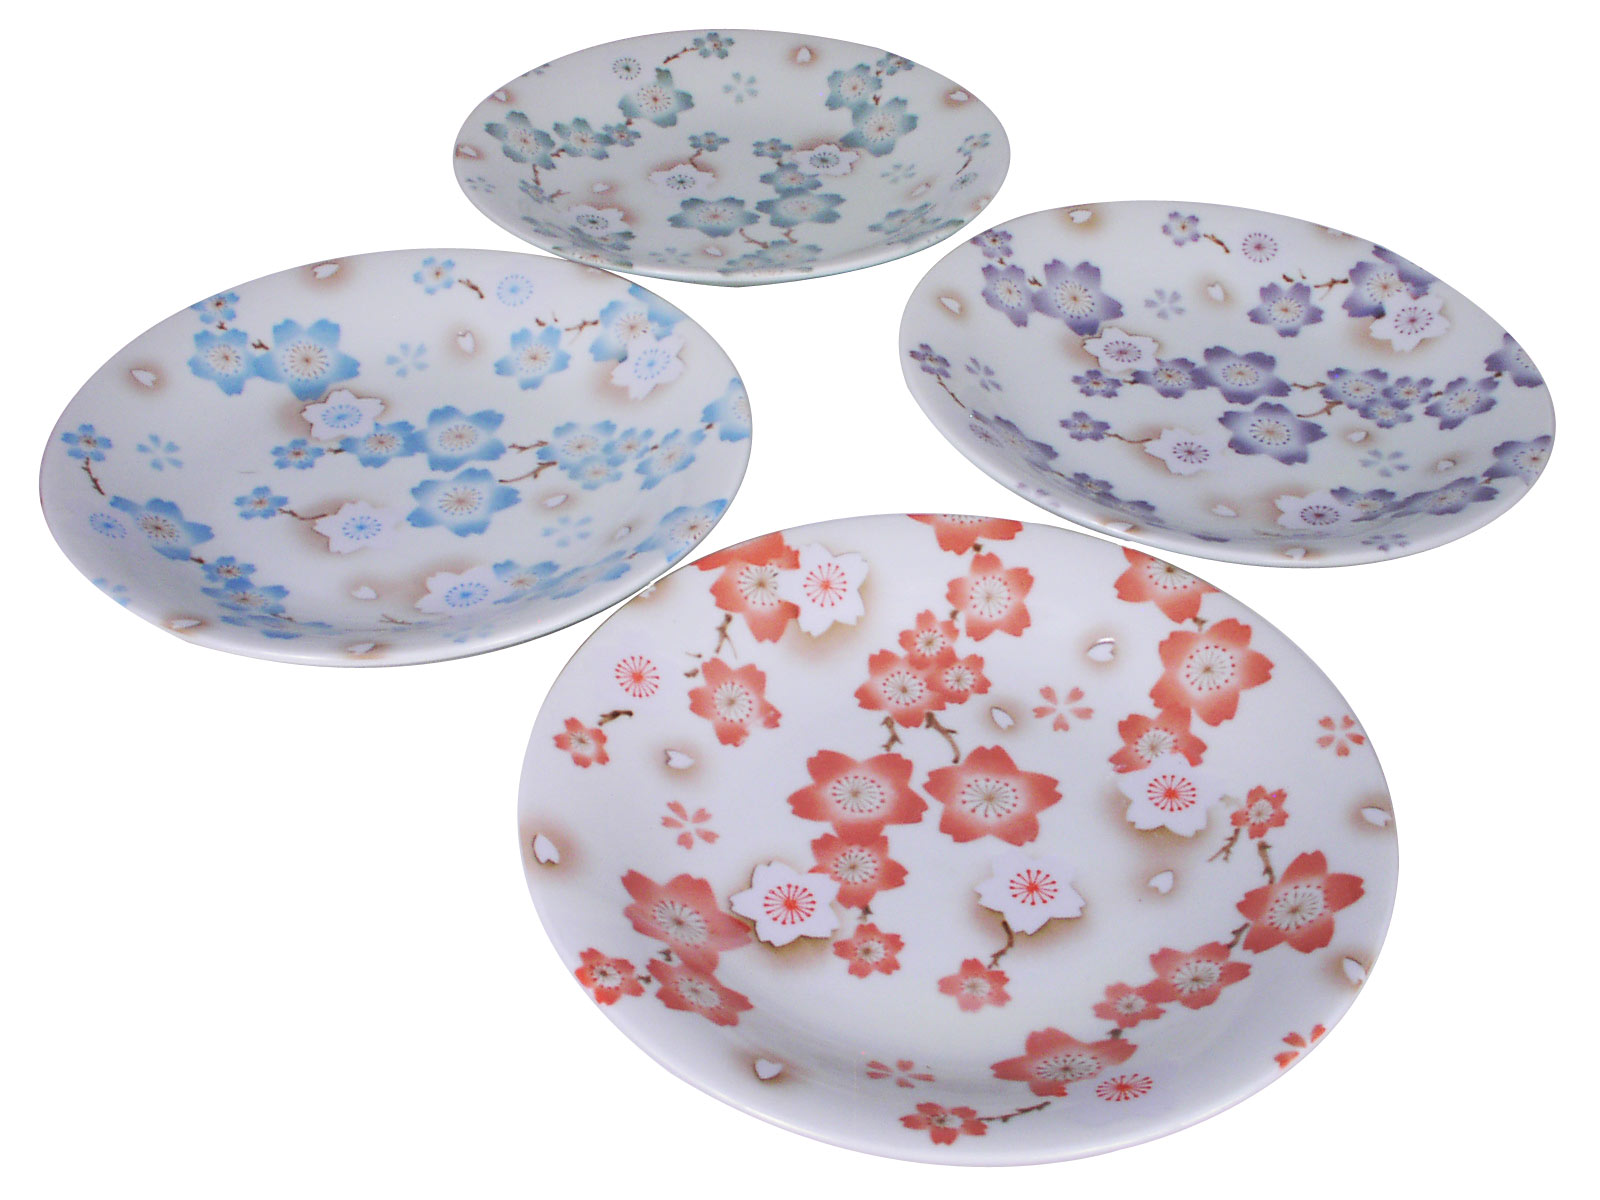 Season of Cherry Blossoms Assorted Colors Japanese Plates Set of Four  sc 1 st  Mrs. Lin\u0027s Kitchen & of Cherry Blossoms Assorted Colors Japanese Plates Set of Four